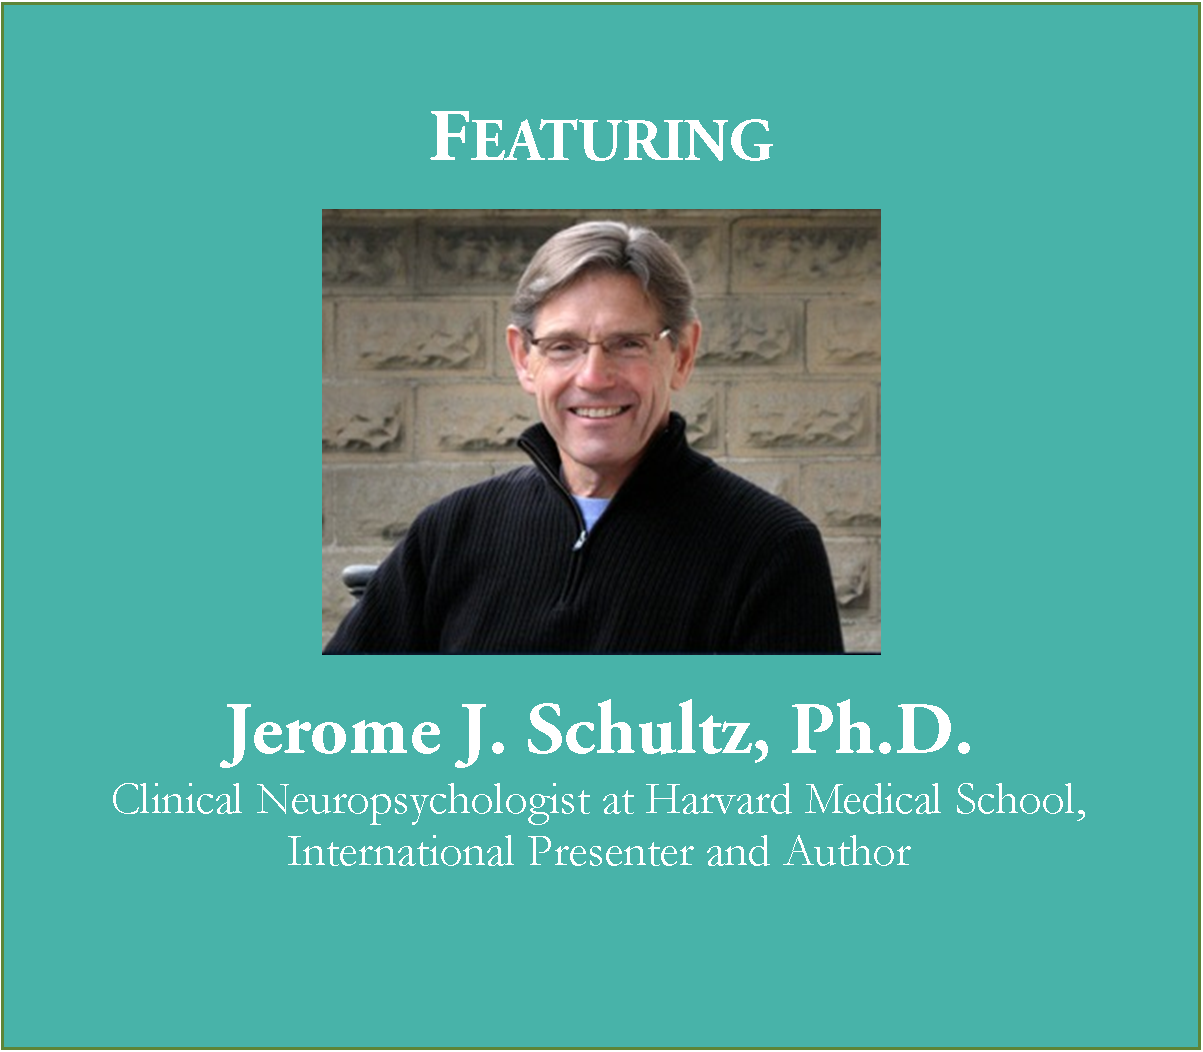 Jerome J. Schultz, Ph.D